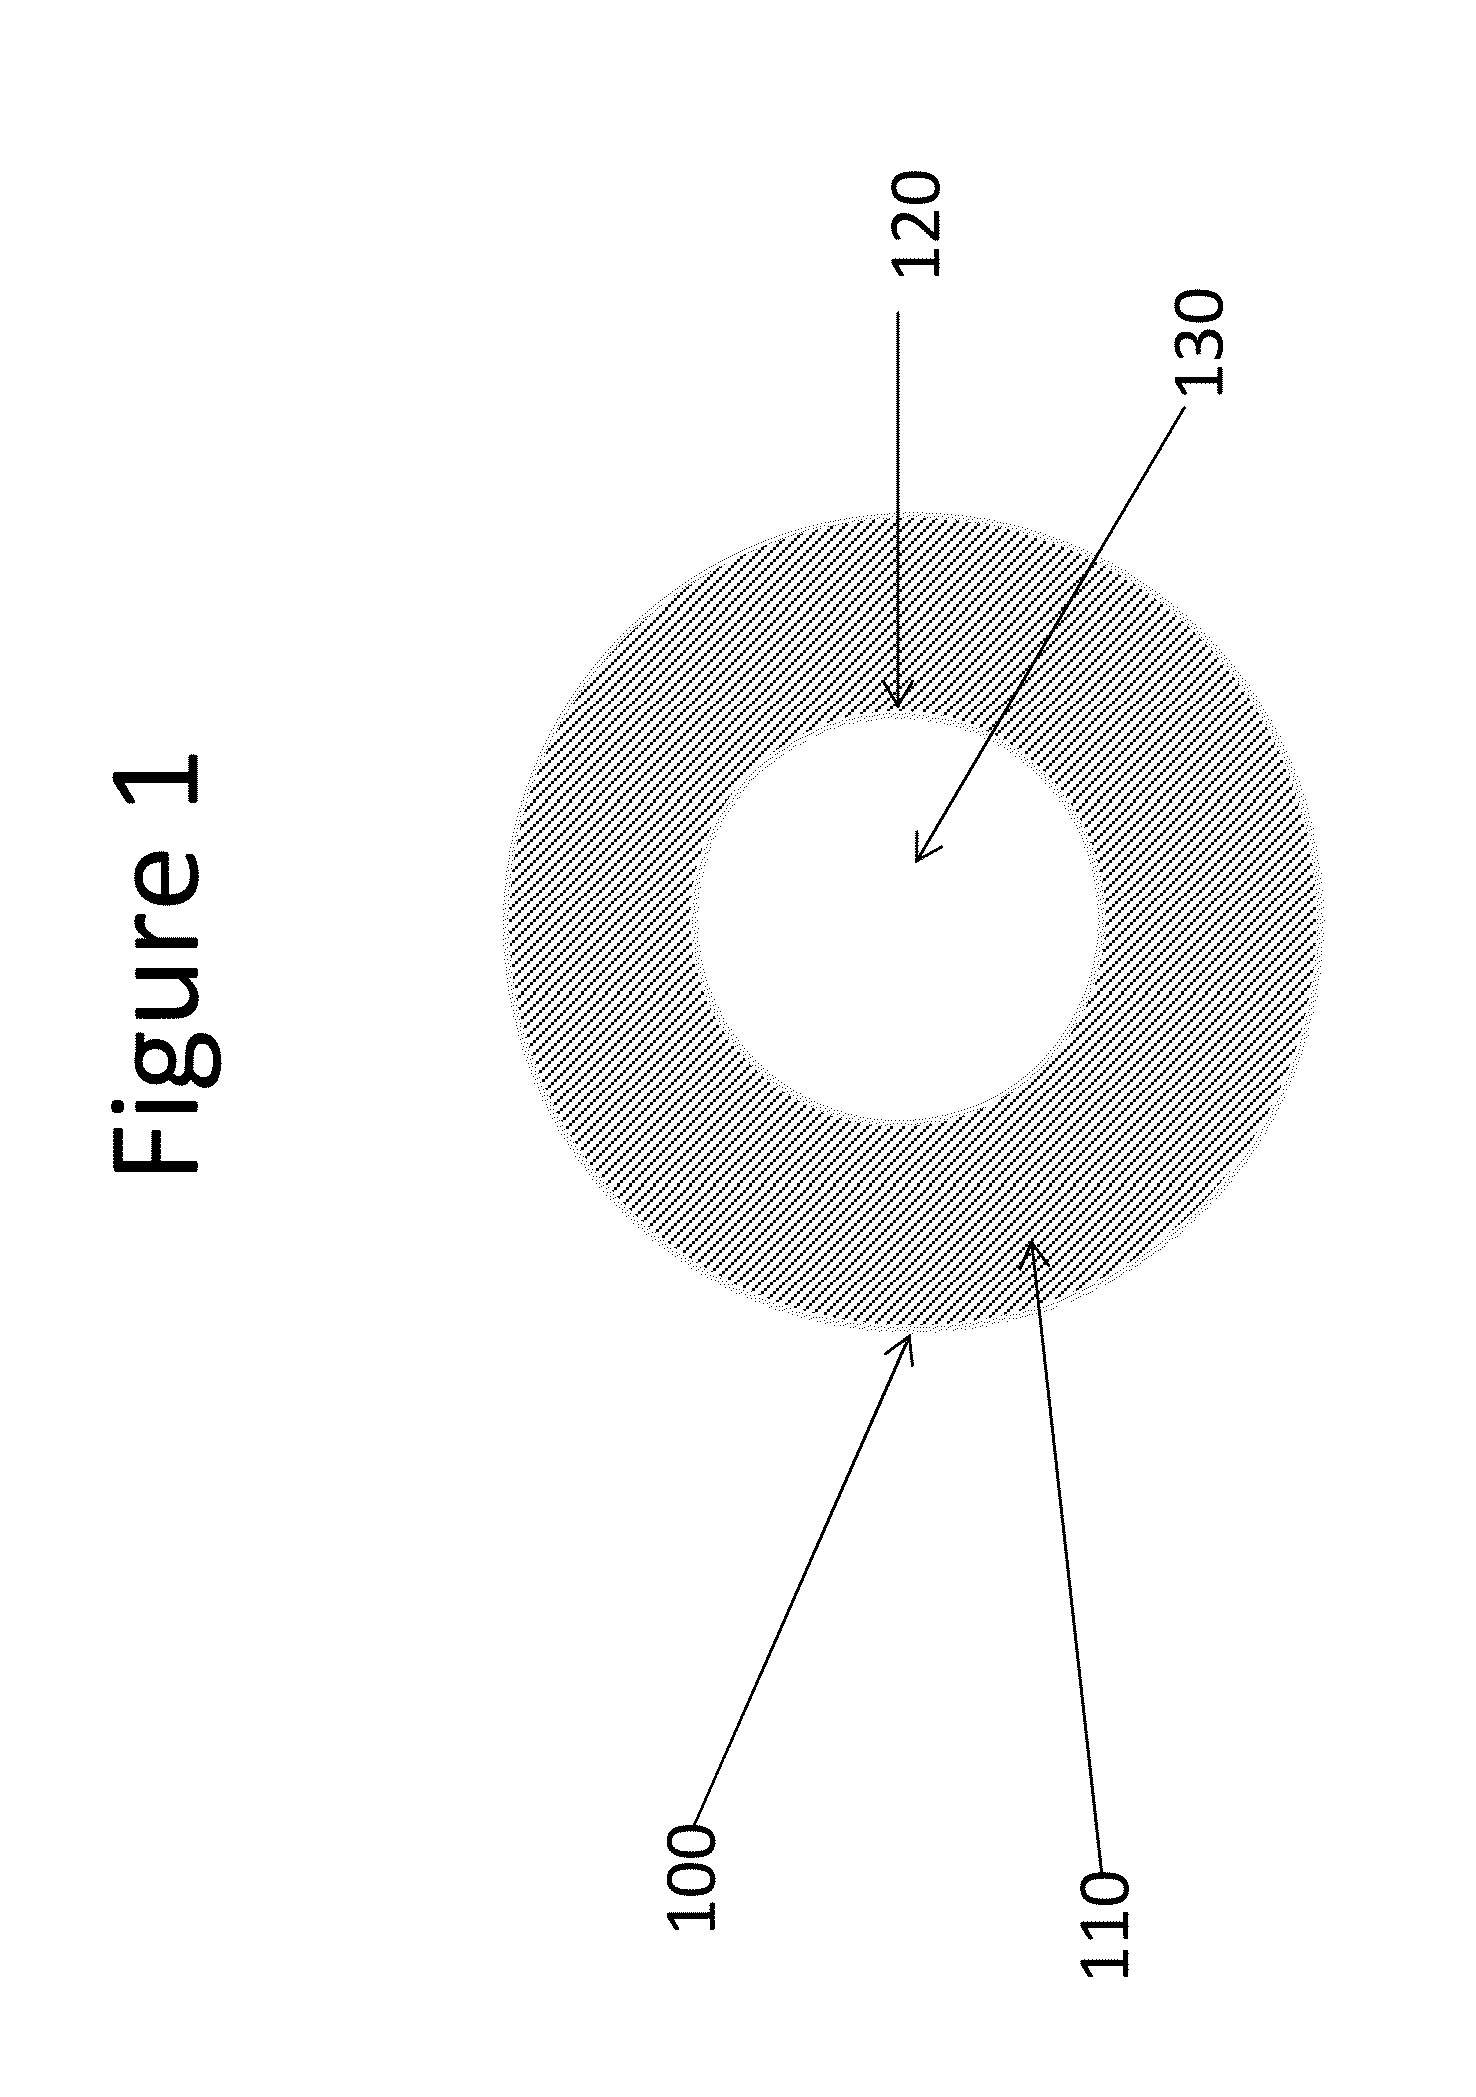 Patent US20130016022 - Hollow Core Coaxial Cables and Methods of ...